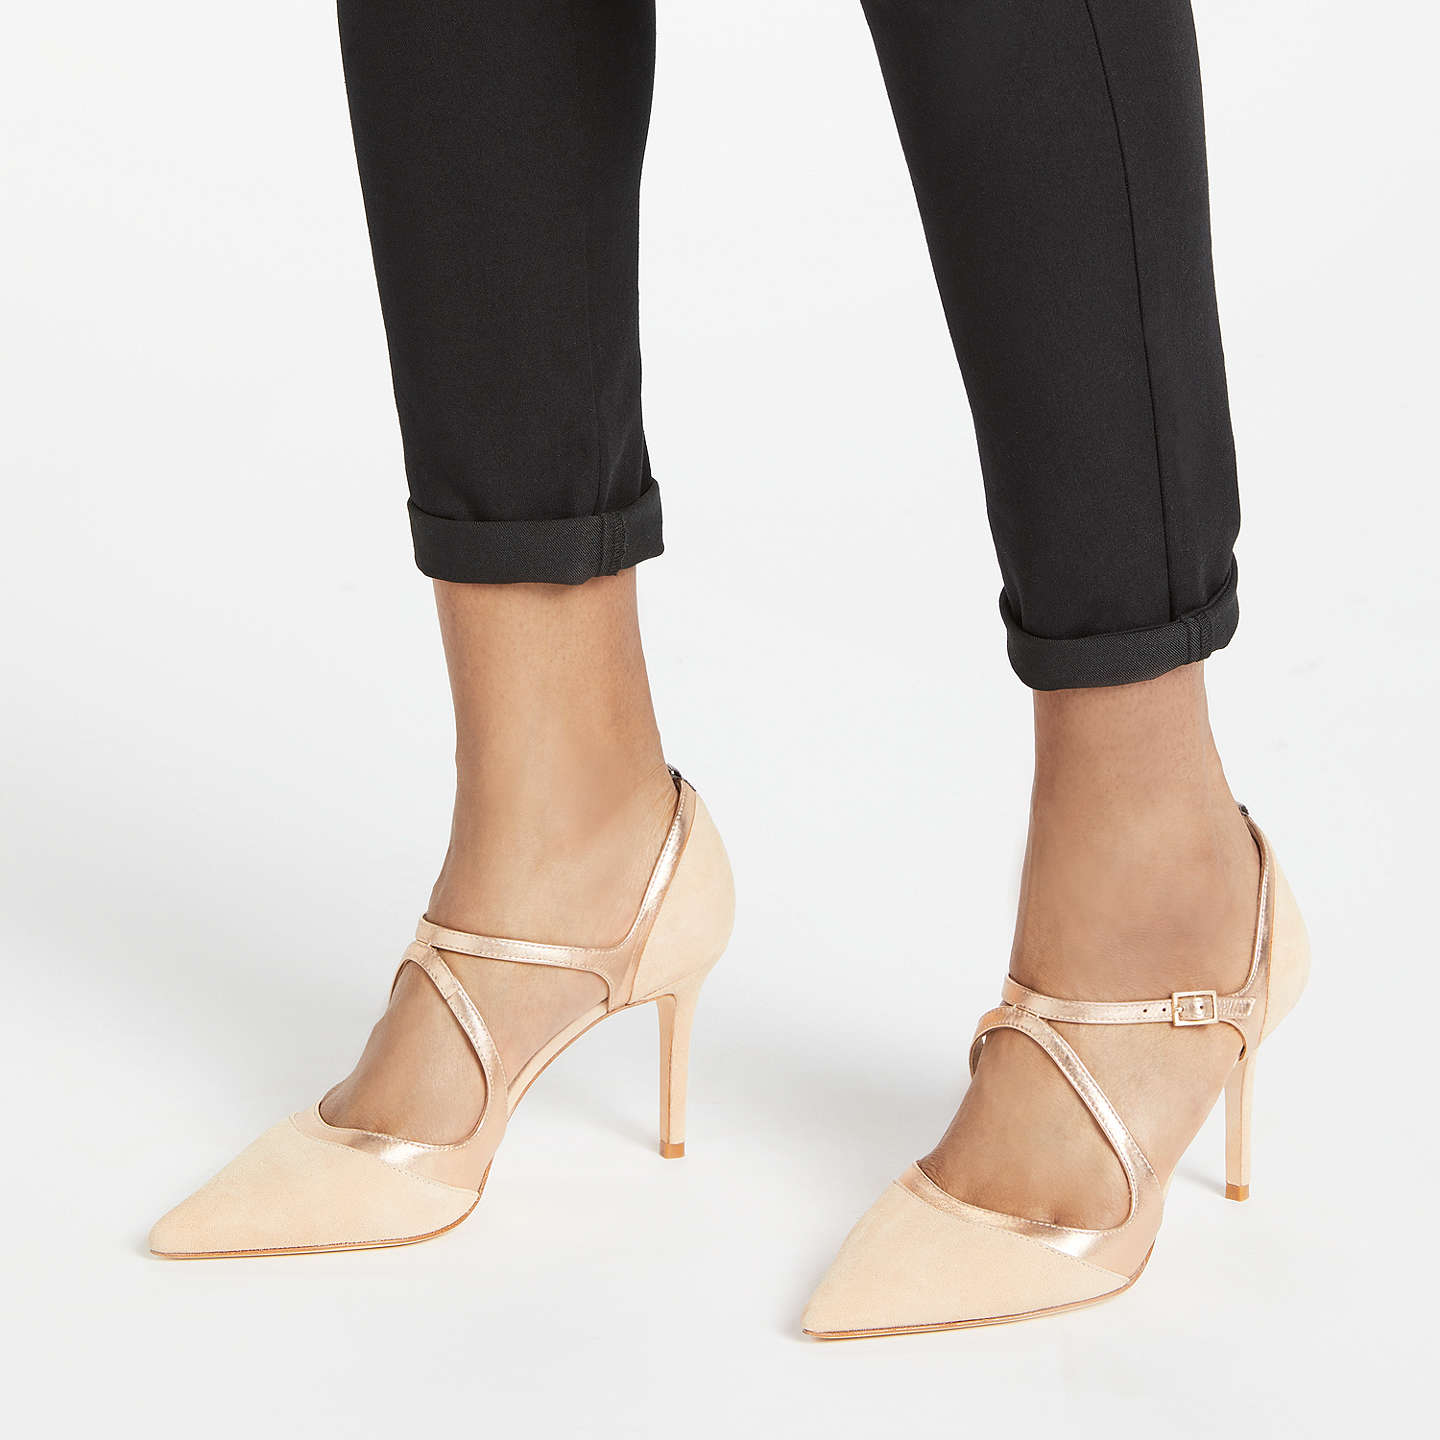 BuyBoden Tisha Pointed Toe Court Shoes, Soft Rose Leather/Suede, 5 Online at johnlewis.com